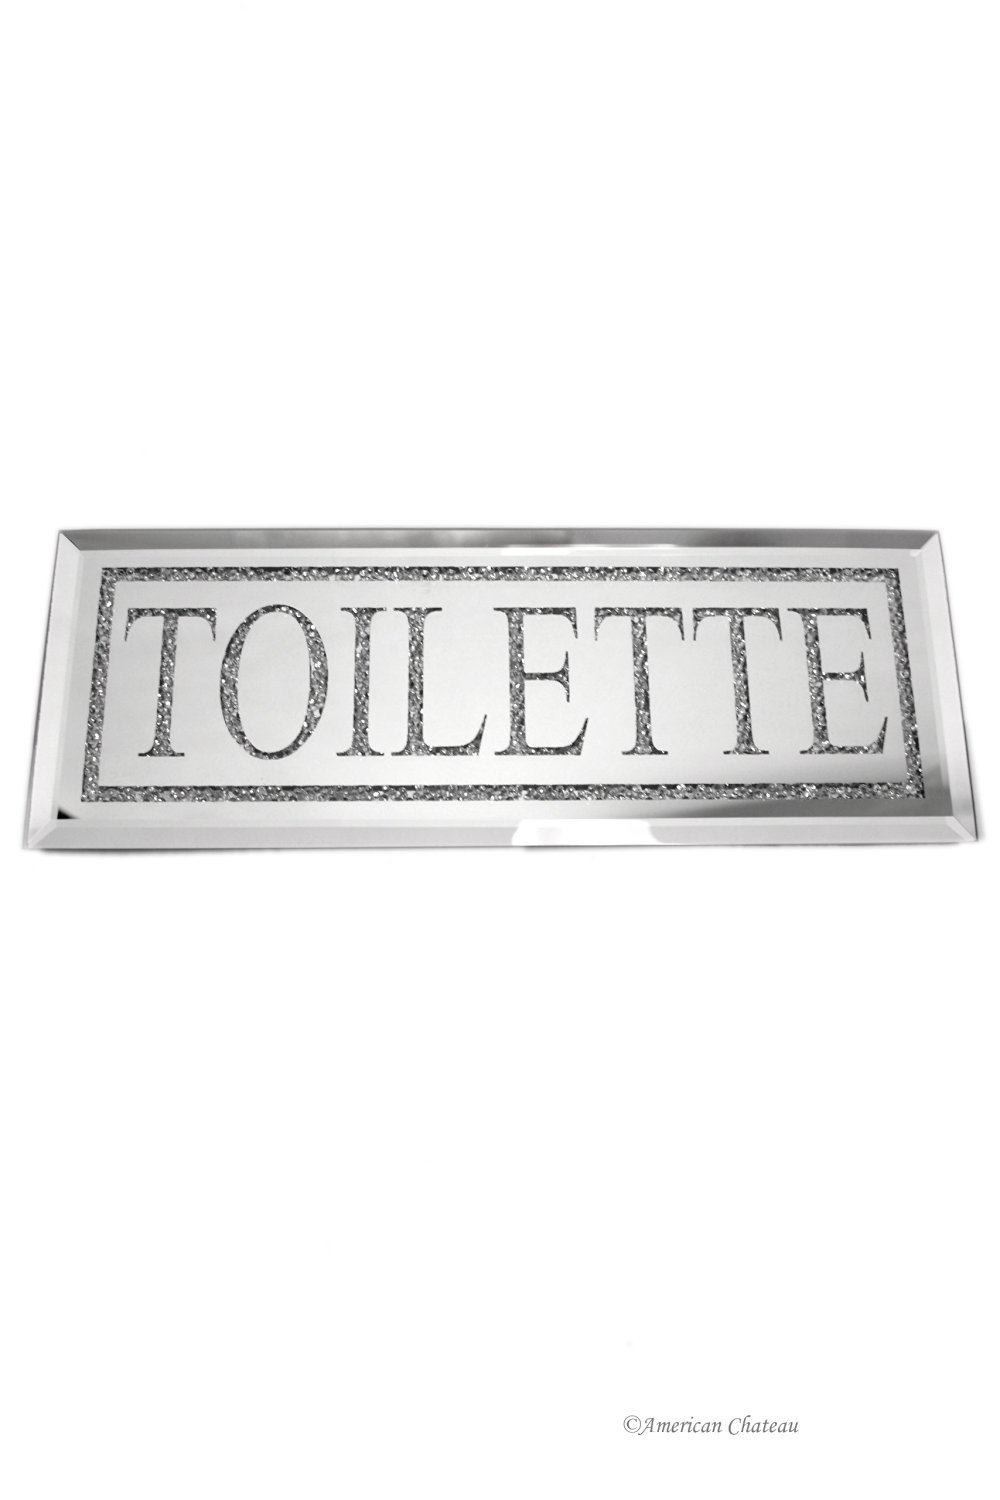 Bead And Mirror French Toilet Toilette Bathroom Door Wall Plaque Sign